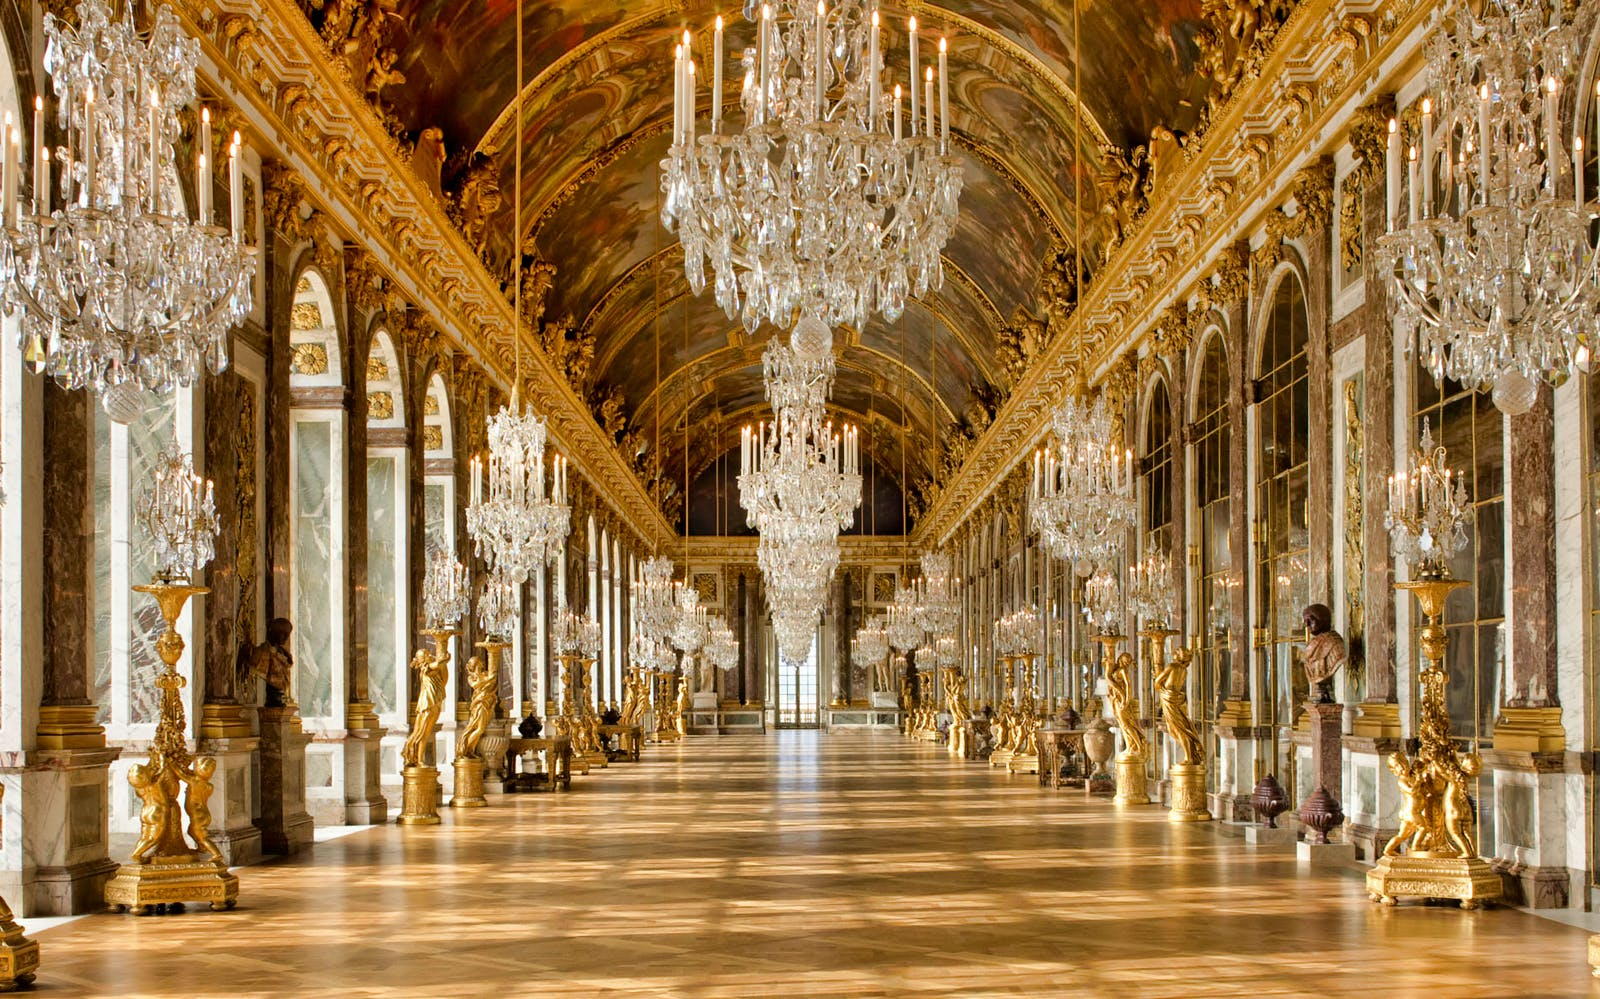 skip the line versailles palace tour with exclusive king's apartments visit-5